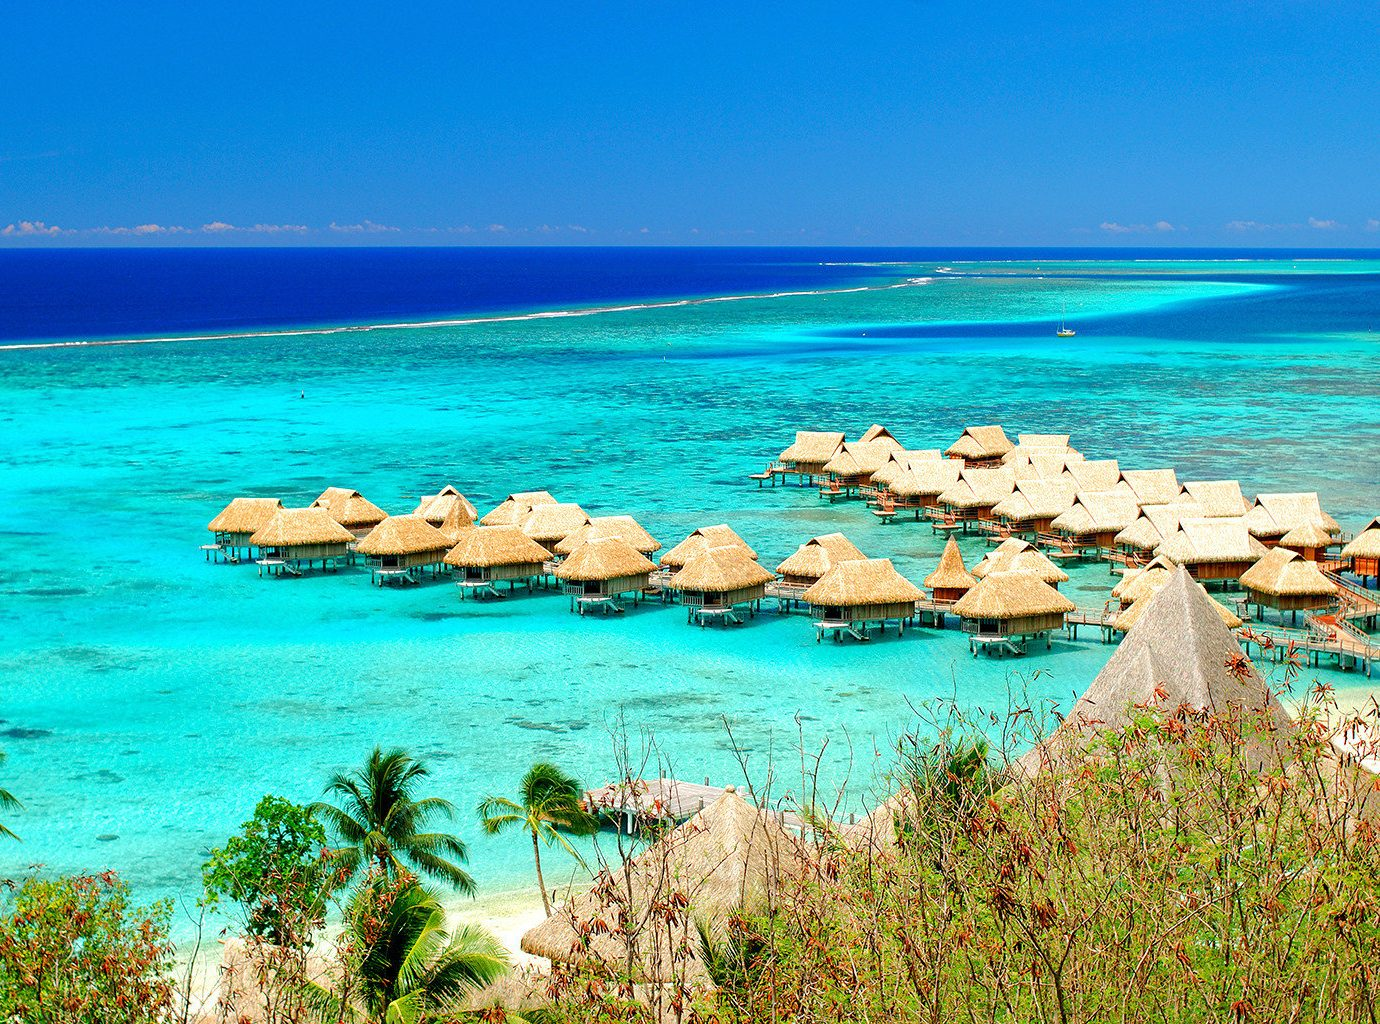 All-Inclusive Resorts Architecture Boutique Hotels Buildings Exterior Hotels Luxury Overwater Bungalow Resort Romance Scenic views water sky outdoor shore Sea Nature Beach body of water Coast Ocean horizon vacation blue caribbean islet bay Lagoon cape Island tropics cove archipelago sand